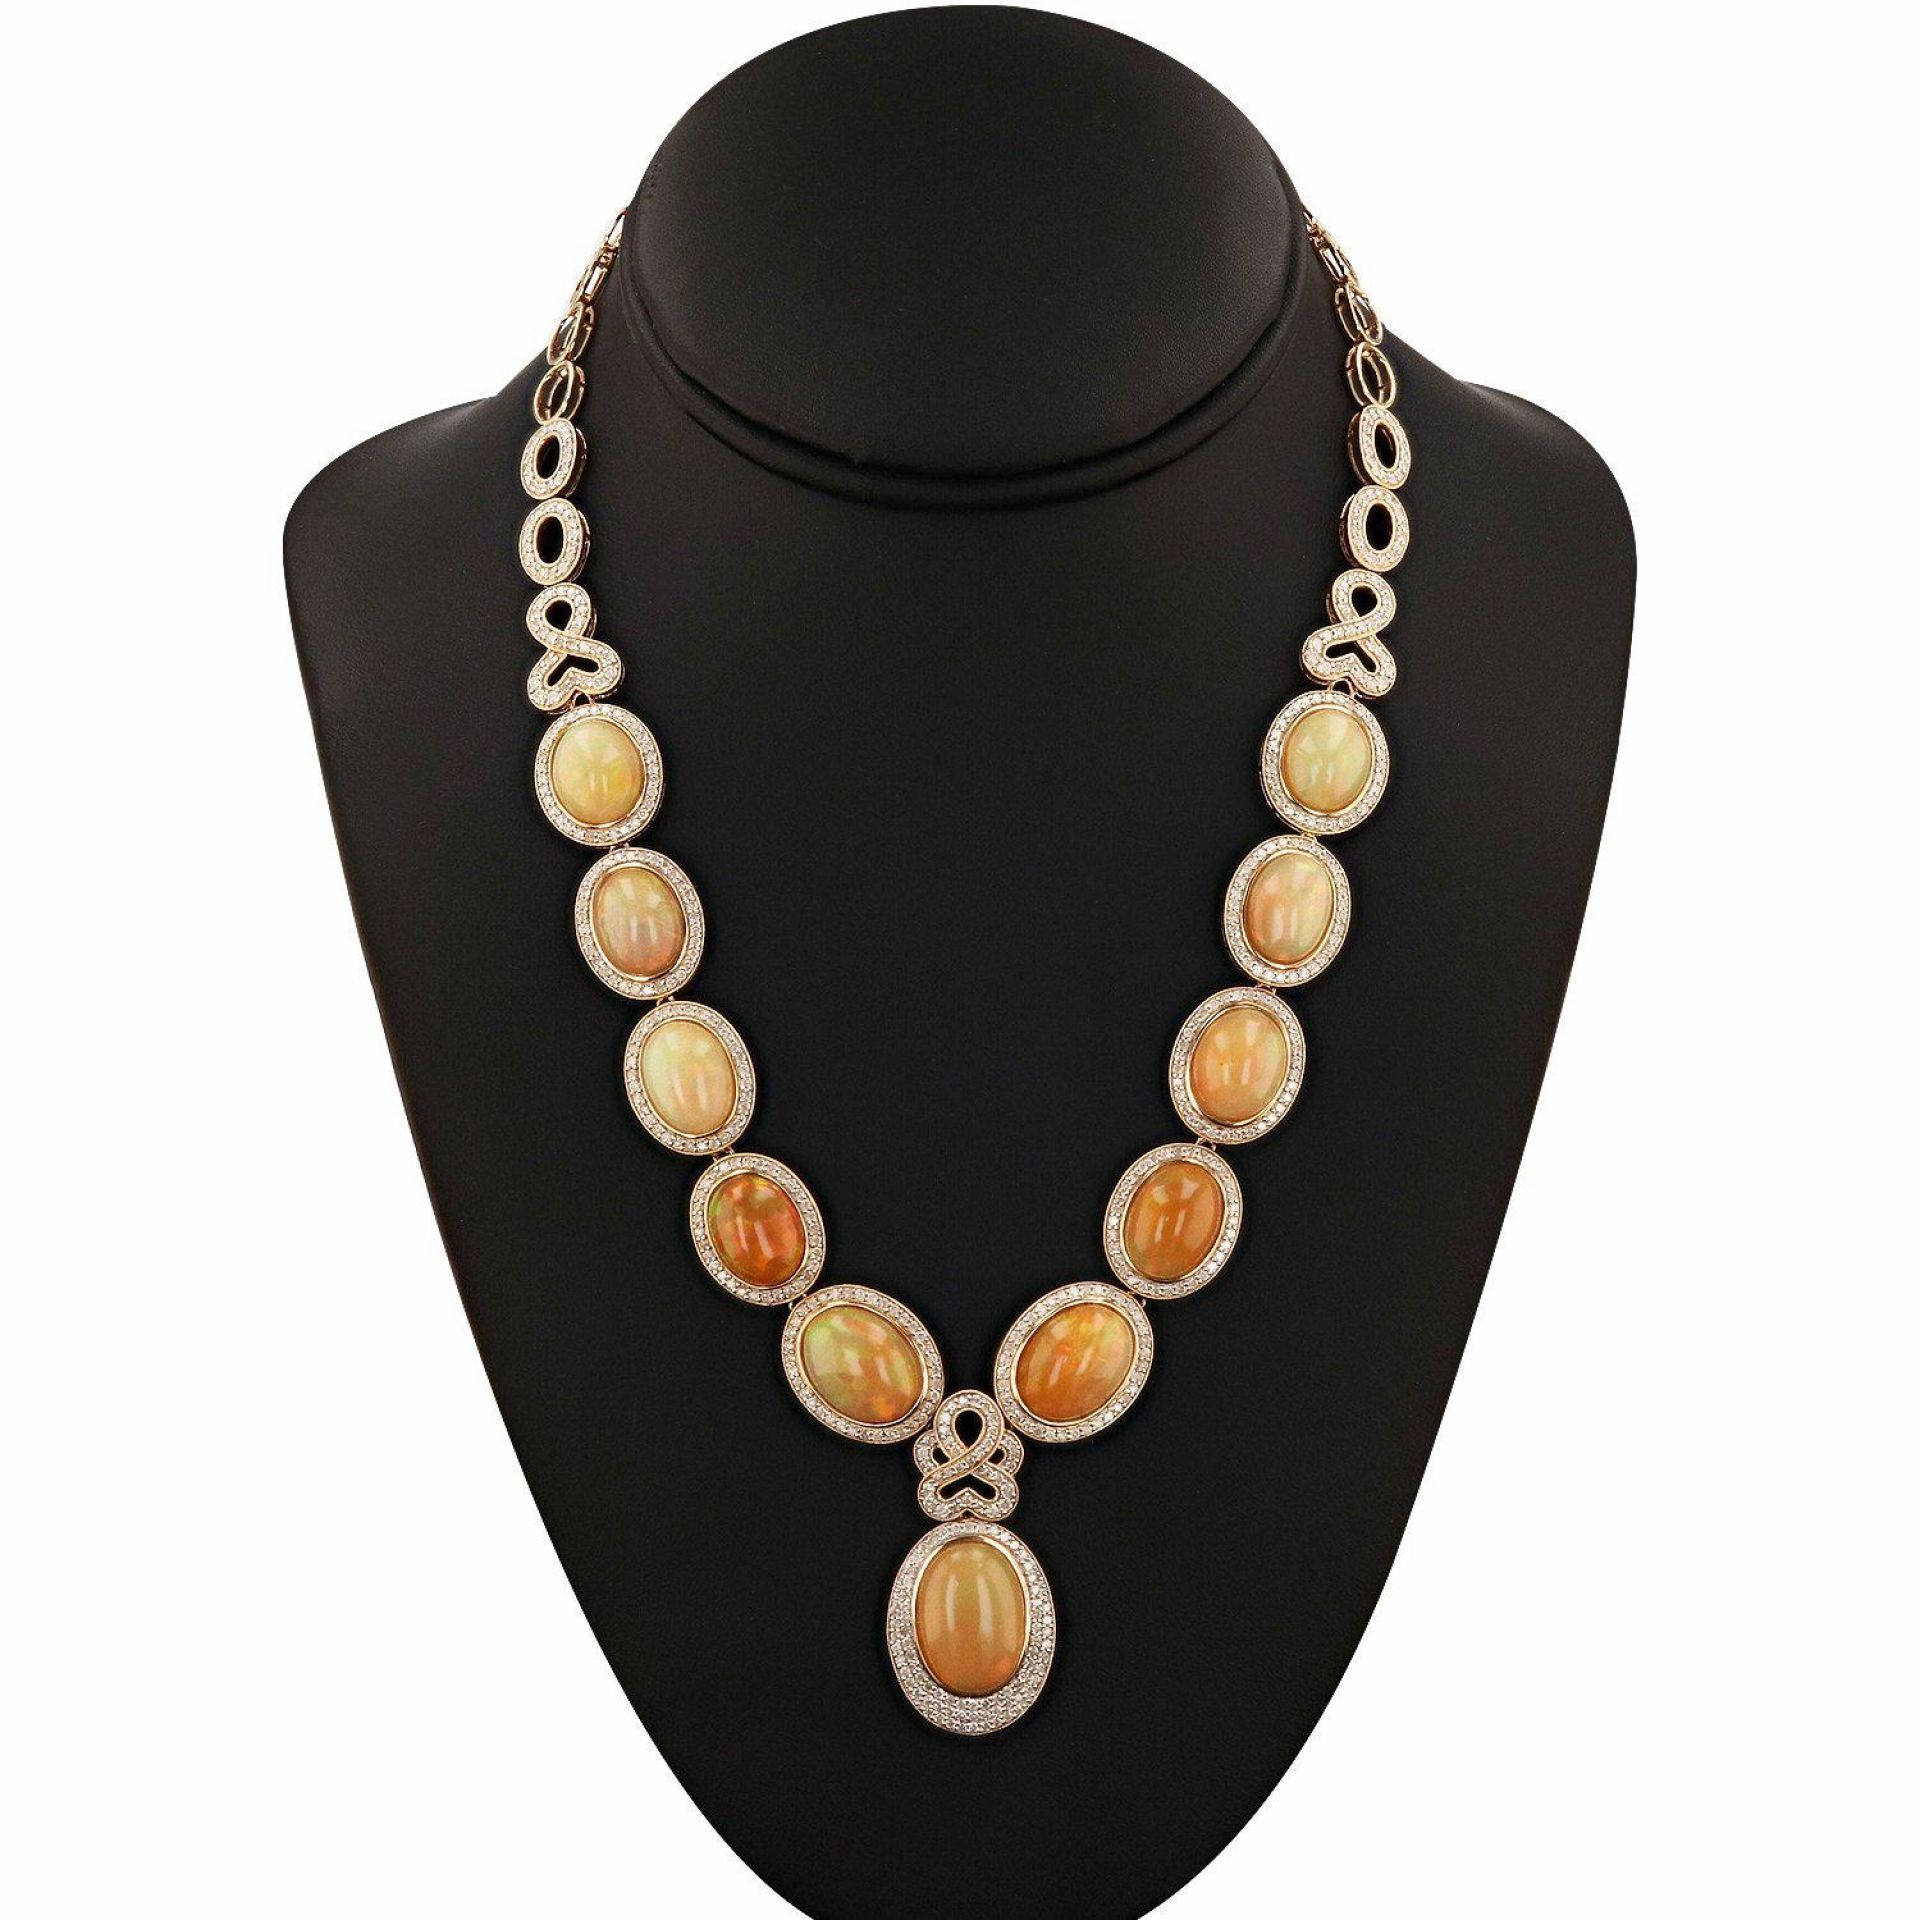 47.26ctw Opal and 4.95ctw Diamond 14KT Yellow Gold Necklace